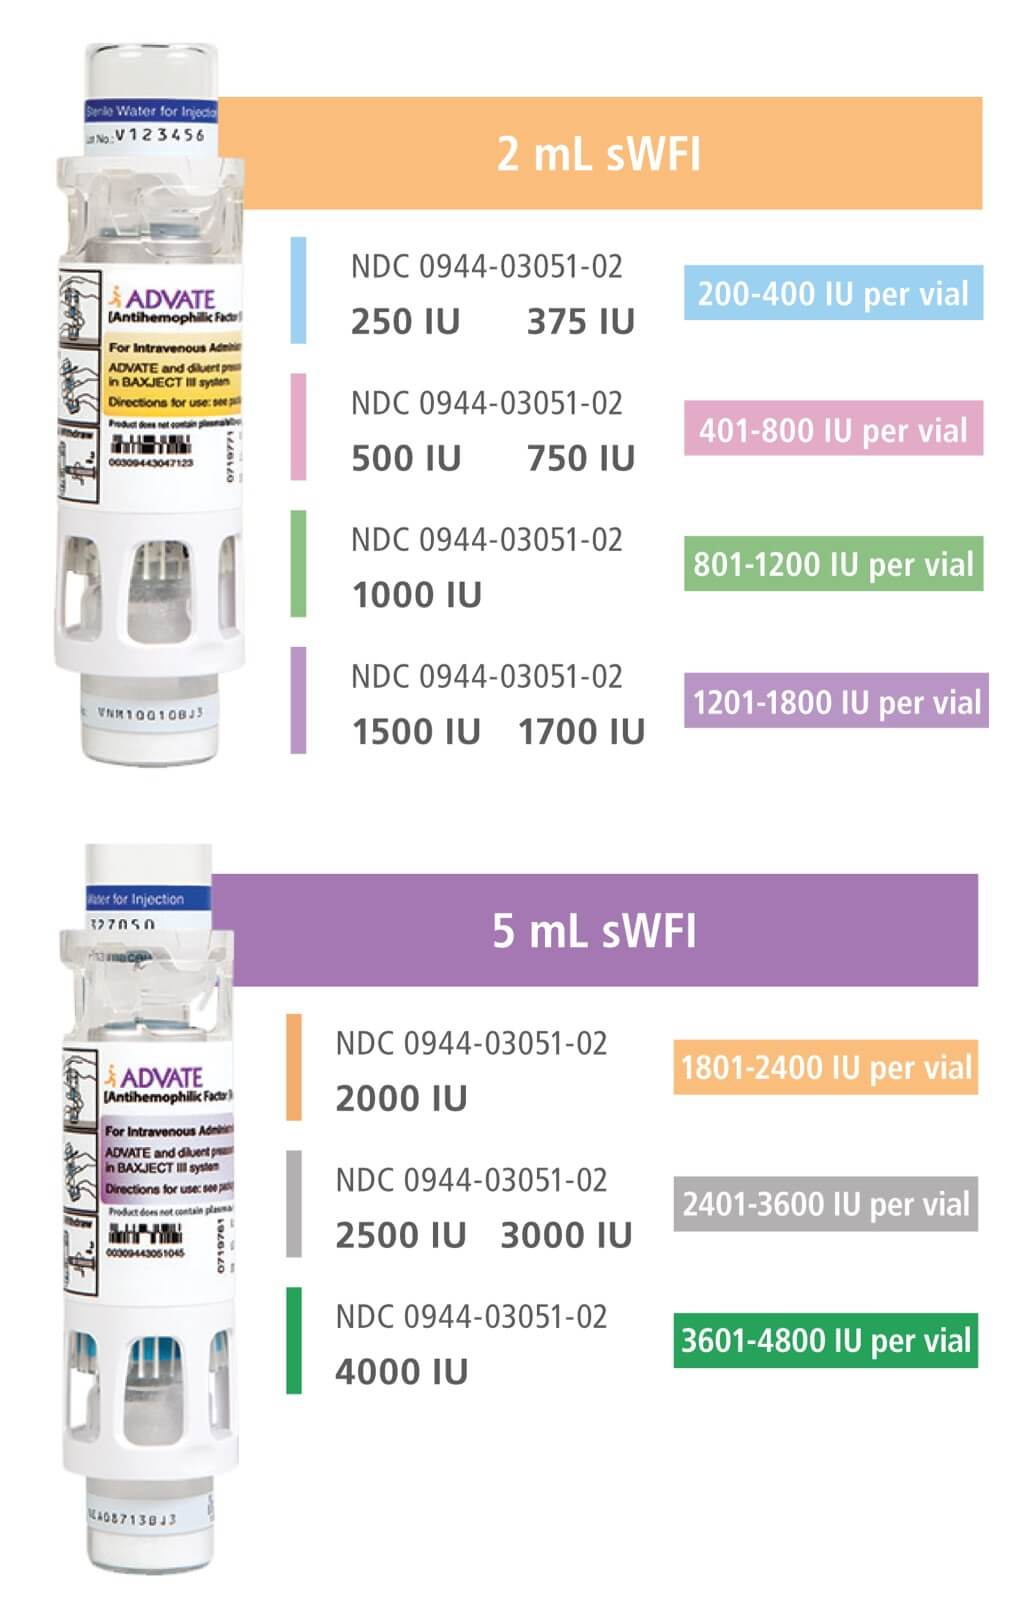 Image of 2 mL and 5 mL vials and their associated dosing options.